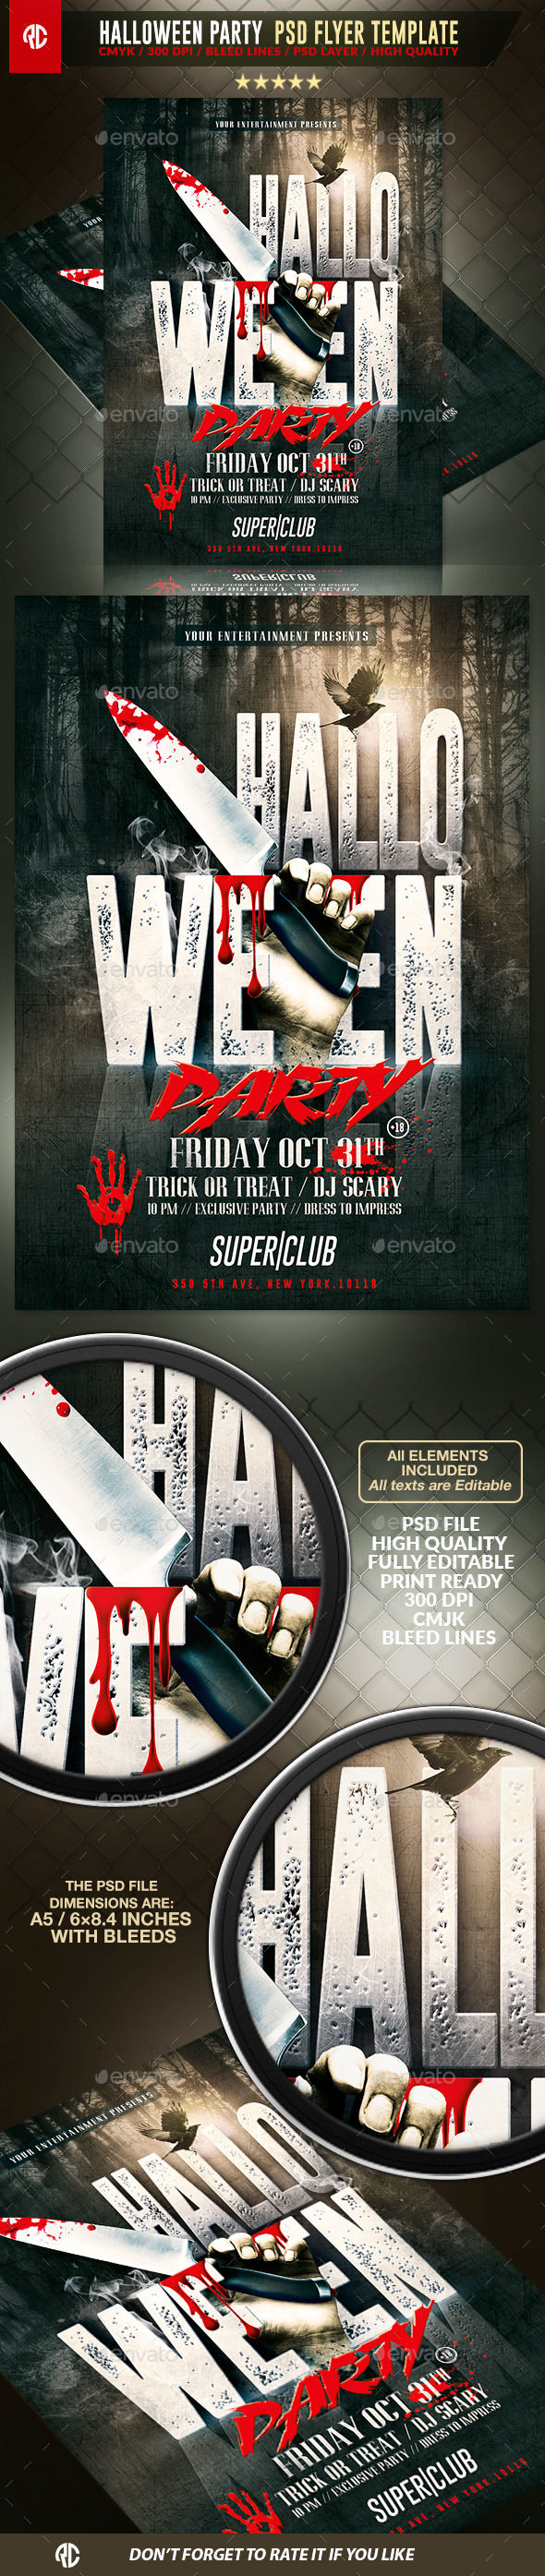 Halloween Horror Party by RomeCreation (Halloween party flyer)